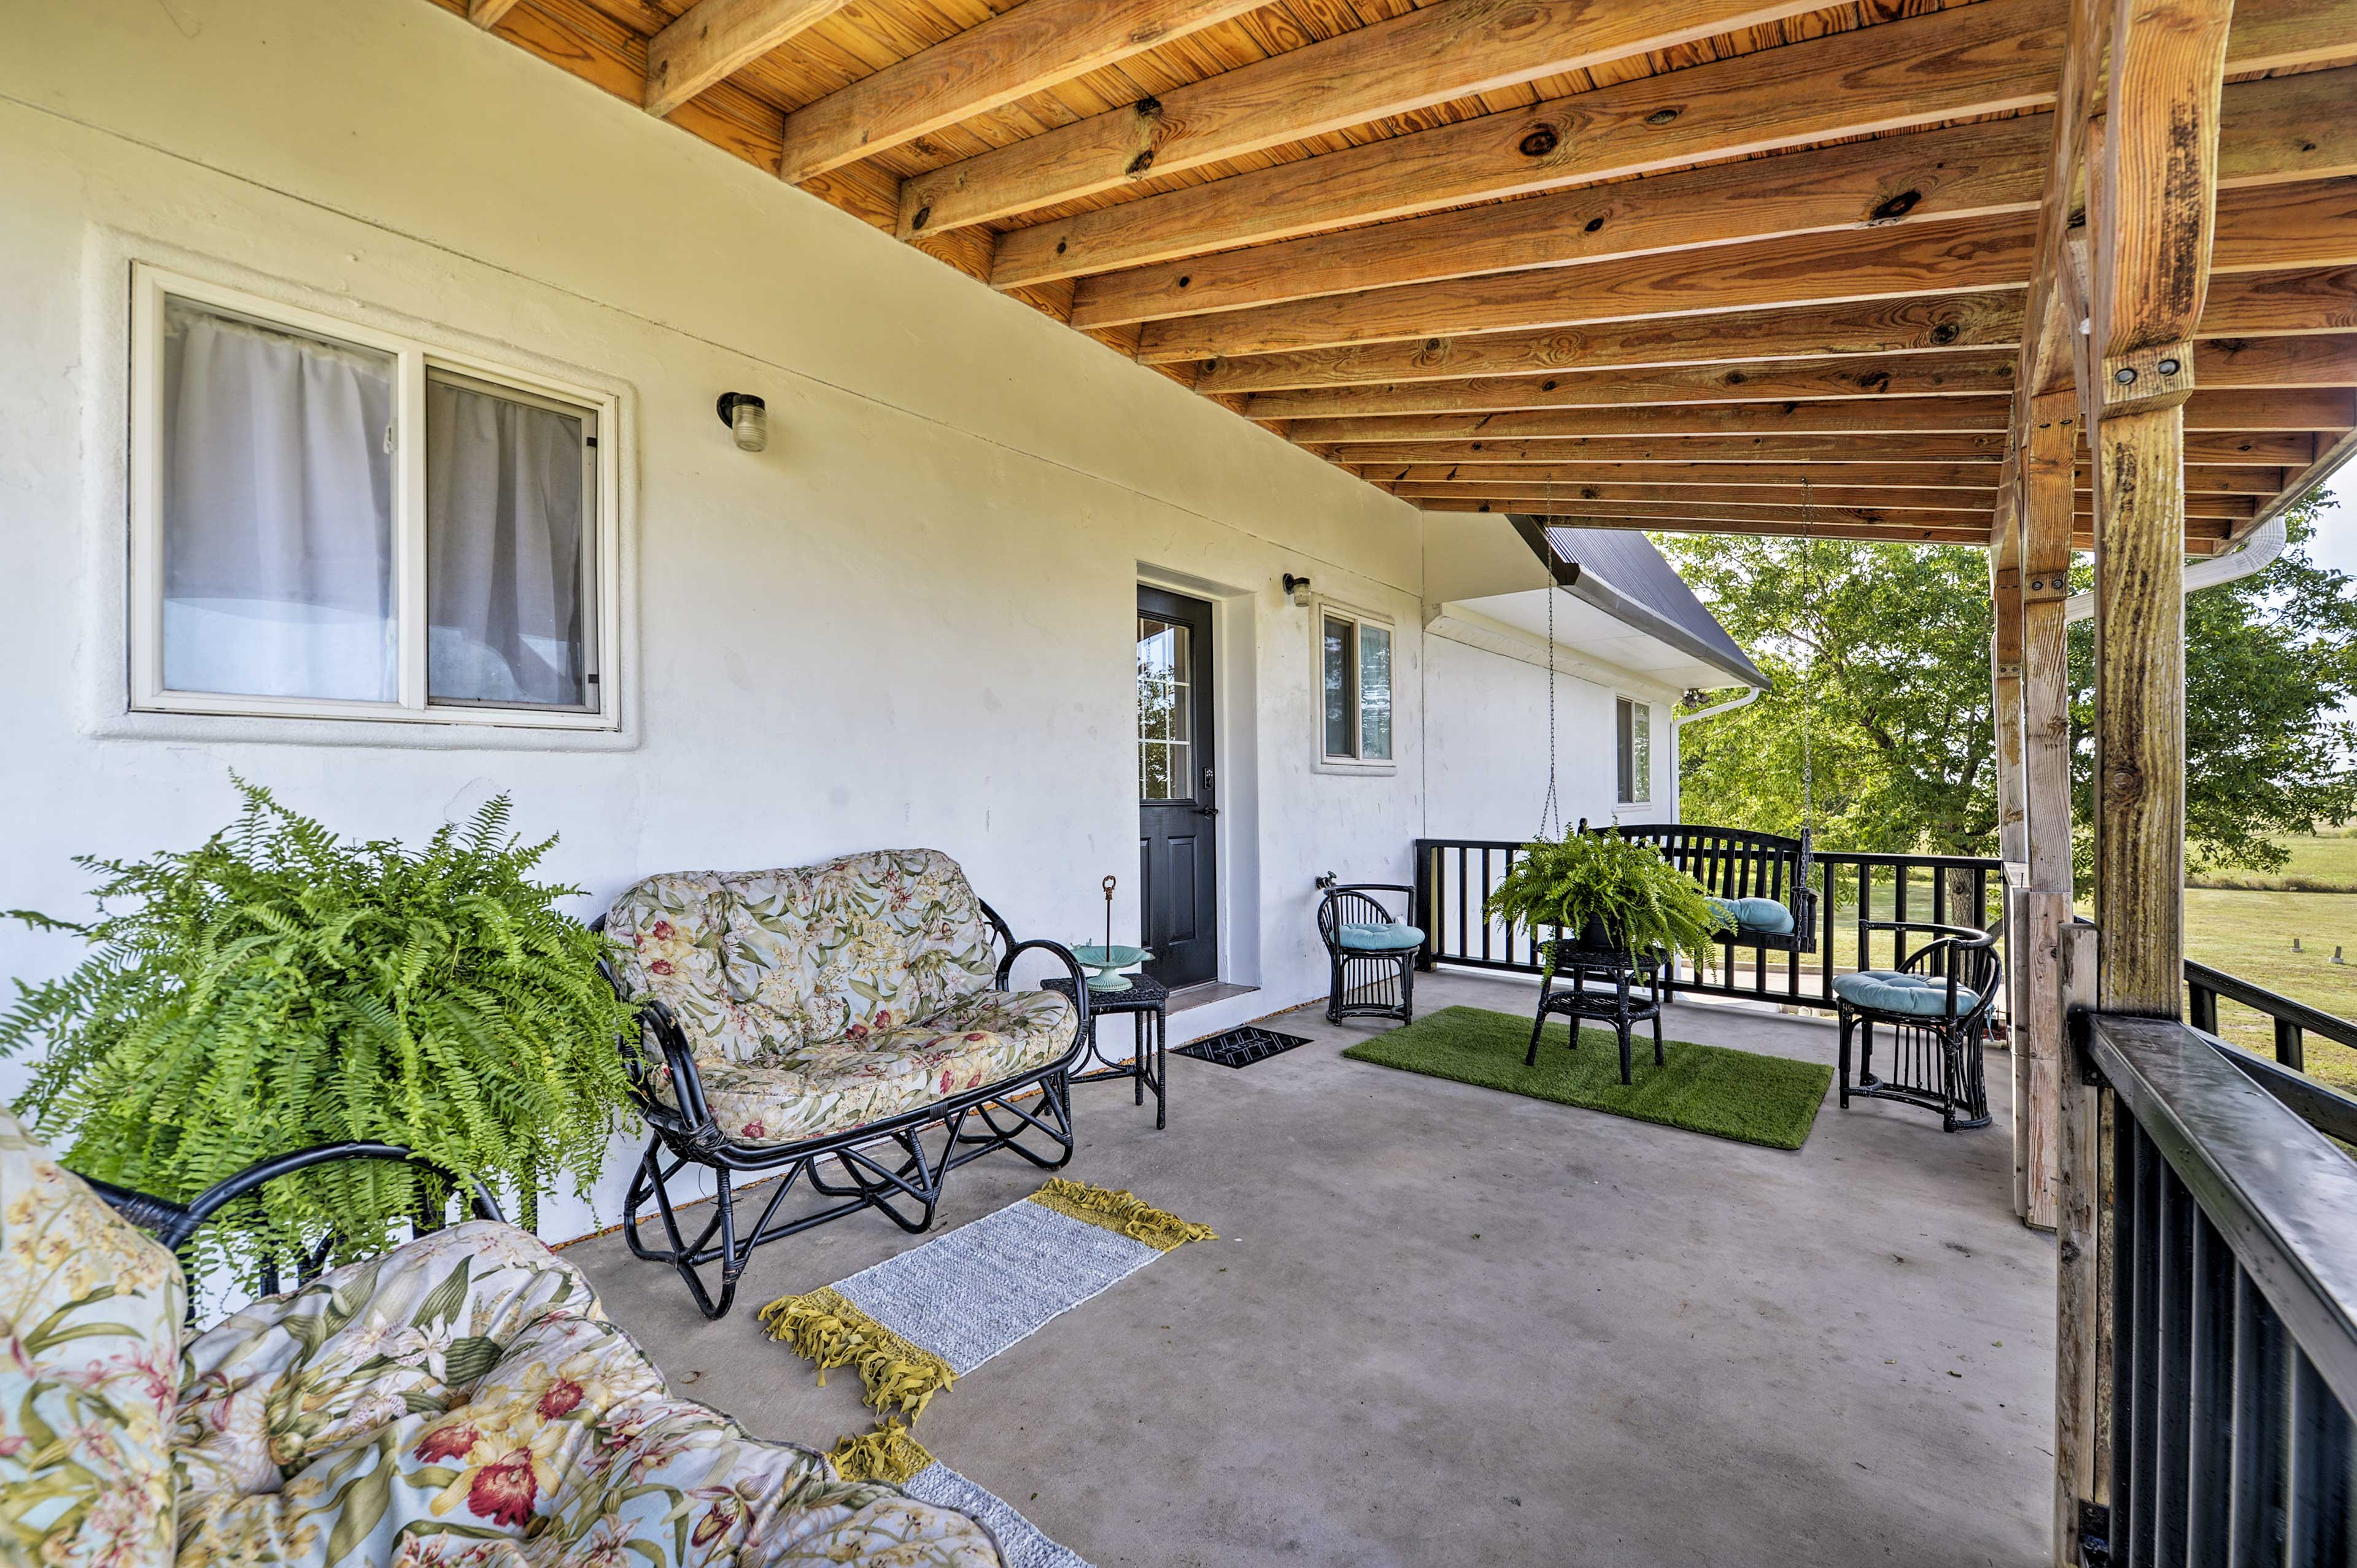 Breathe the fresh air on your private porch.